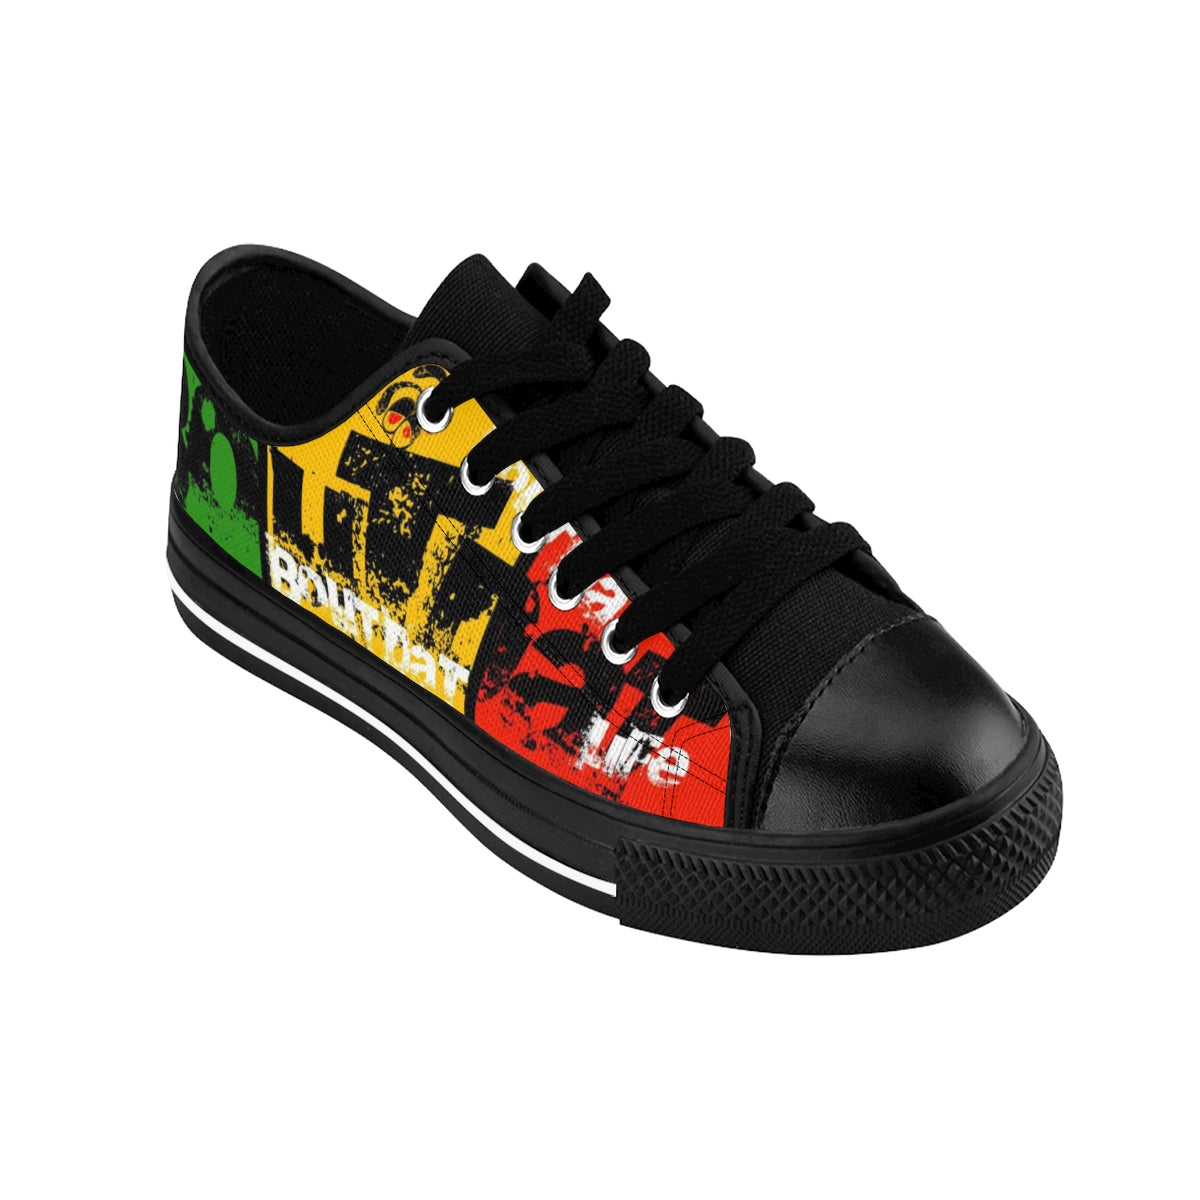 Bout Dat Life Signature Rasta Sneakers For Him